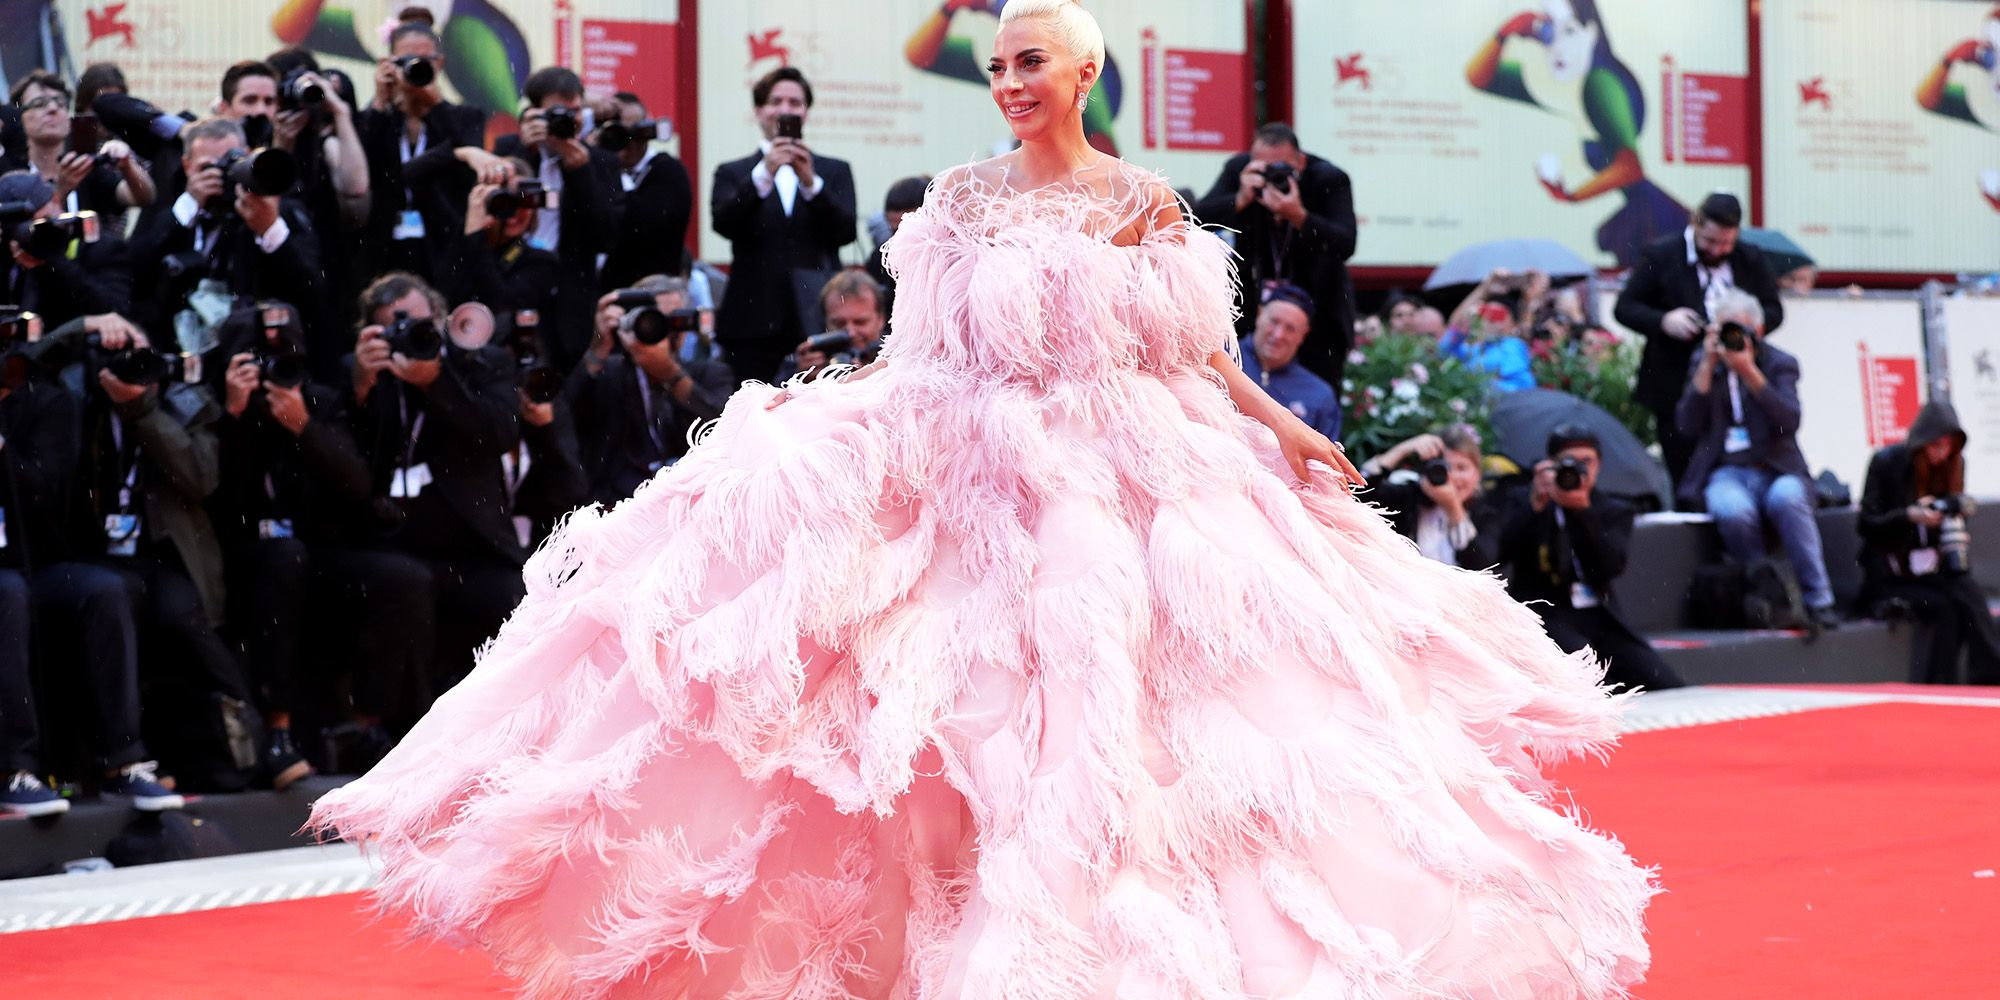 Lady Gaga Wears Giant Pink Gown to Venice Film Festivals